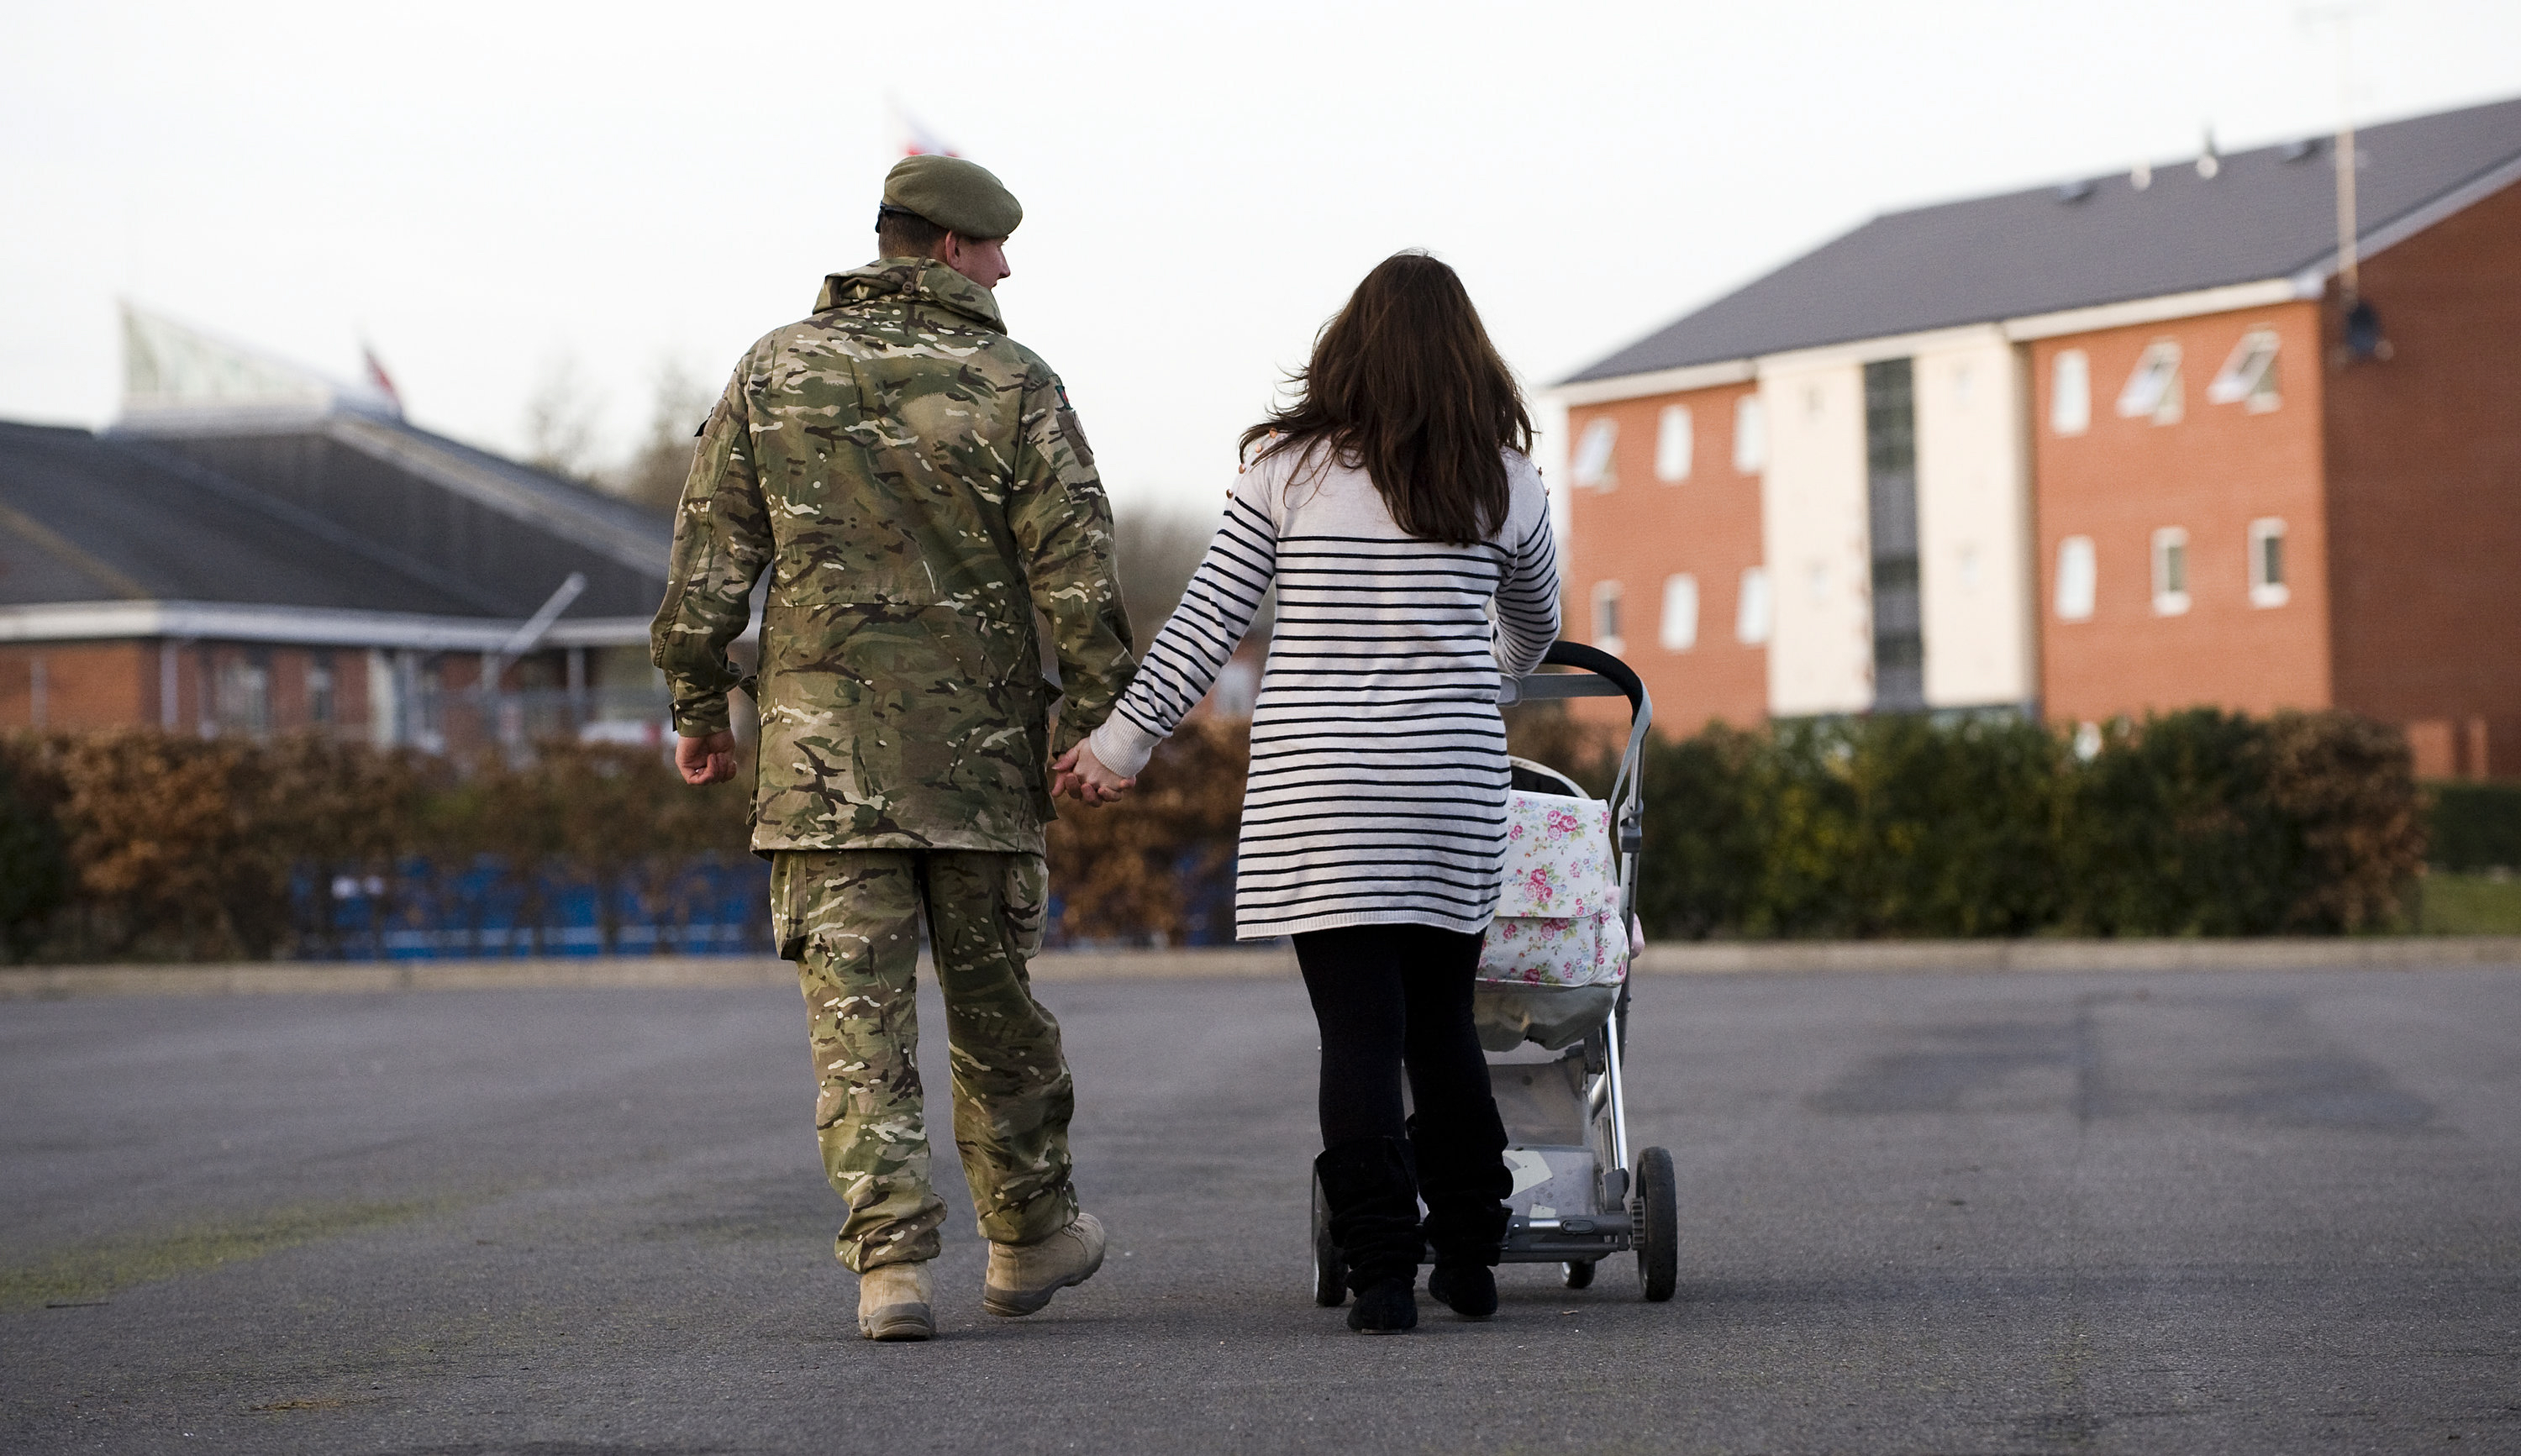 Picture of soldier returned home with young family and pushchair - family law issues sadly affect service personnel too